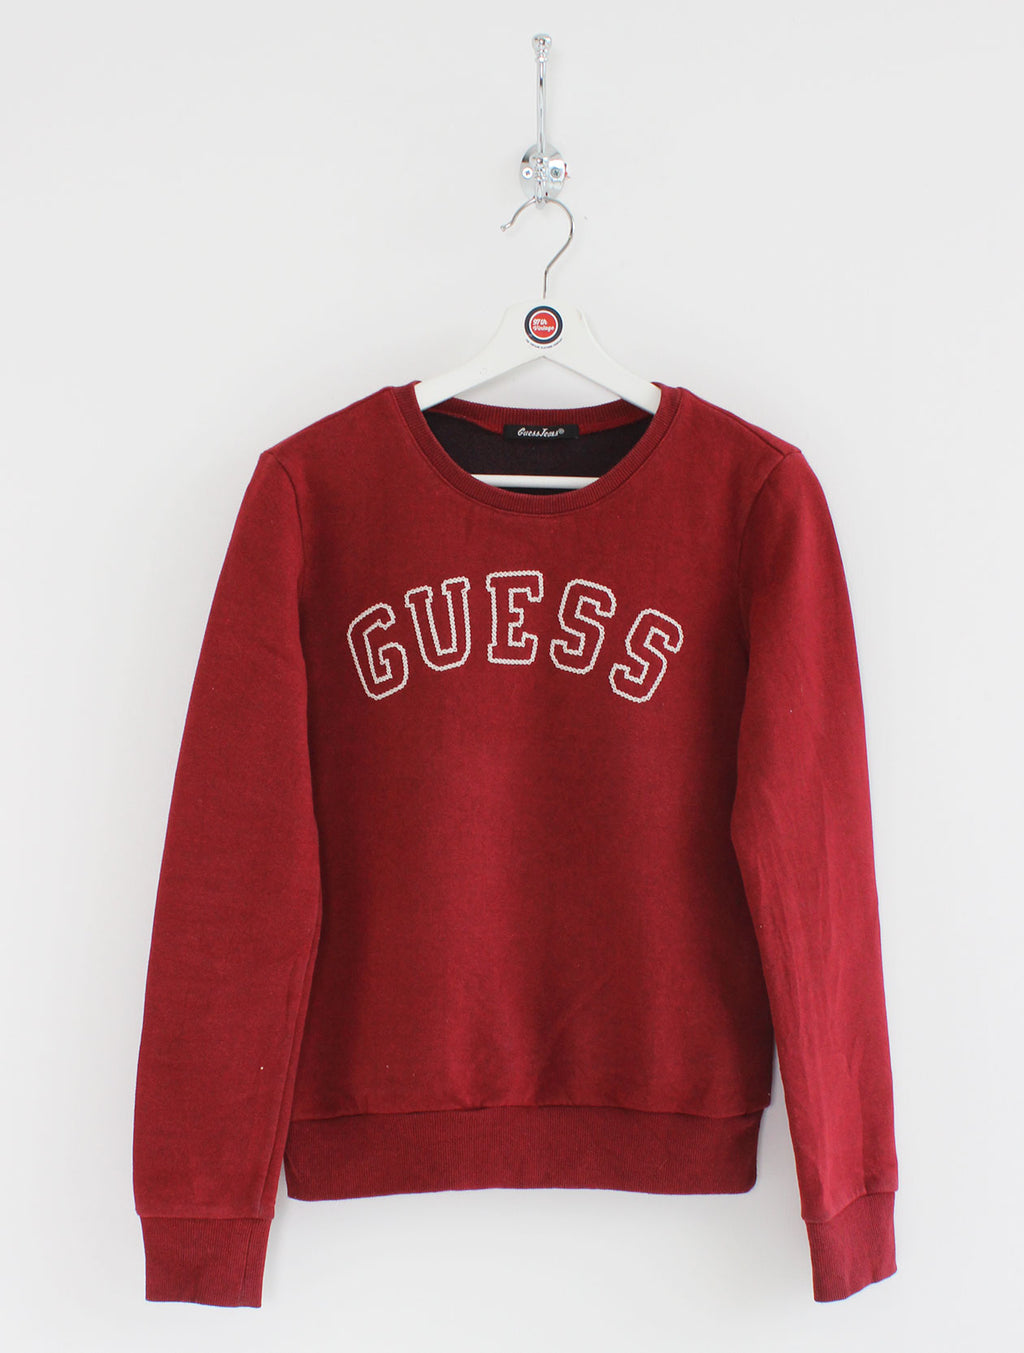 Guess Sweatshirt (XS)